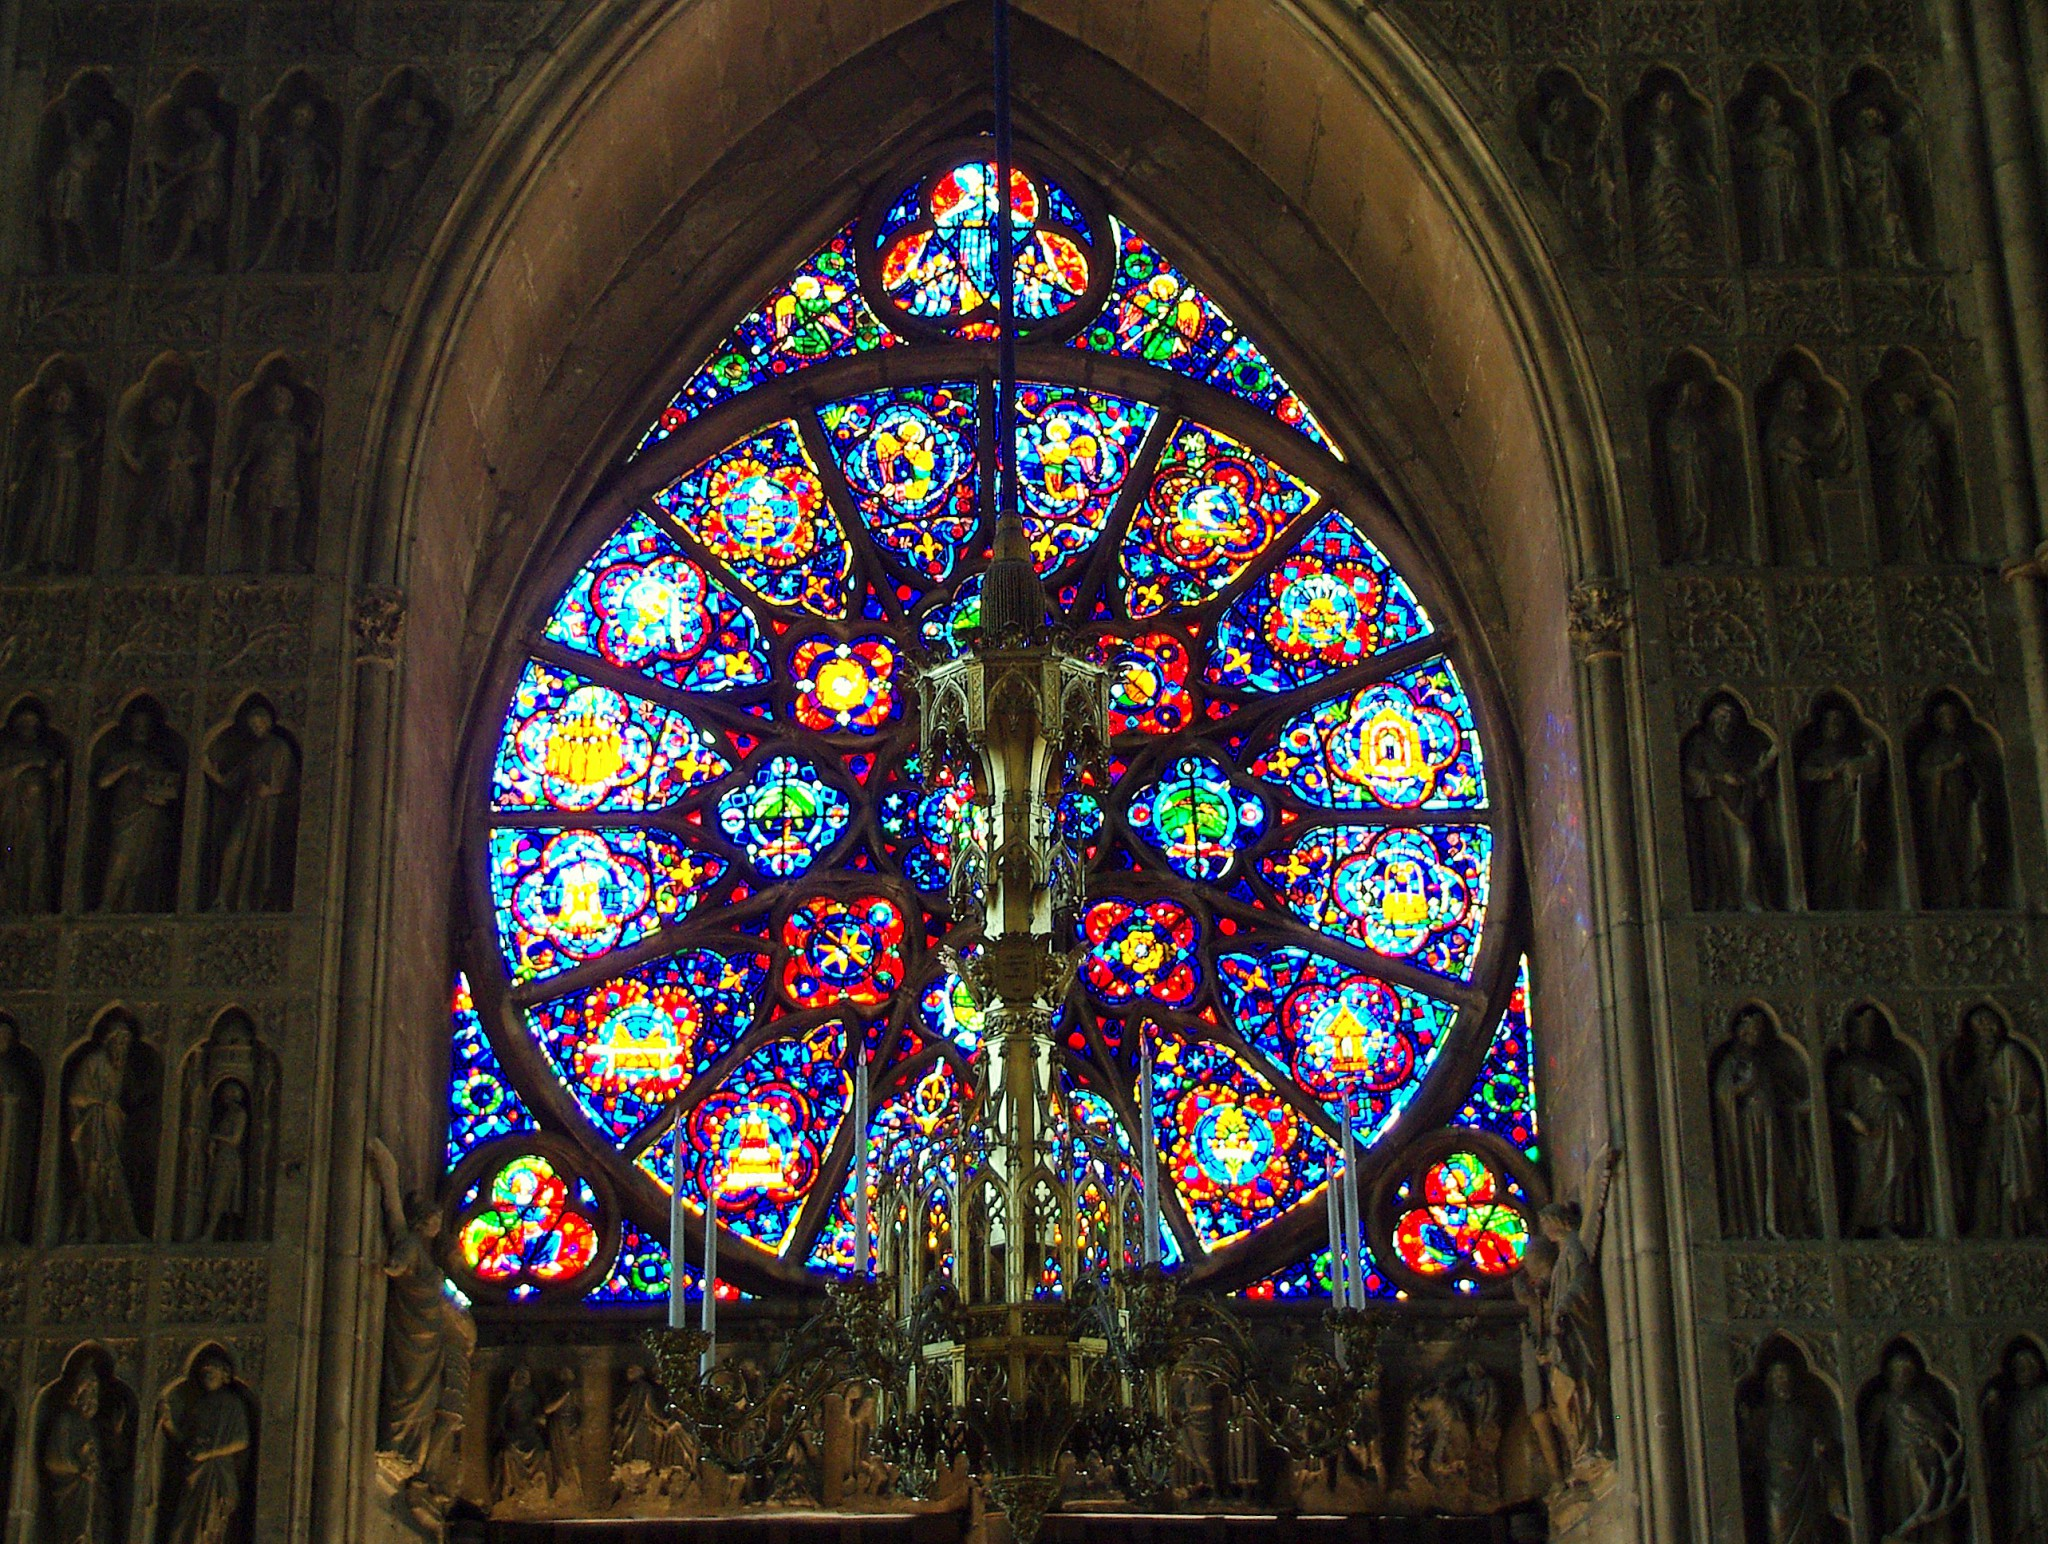 West rose window, Reims Cathedral © French Moments